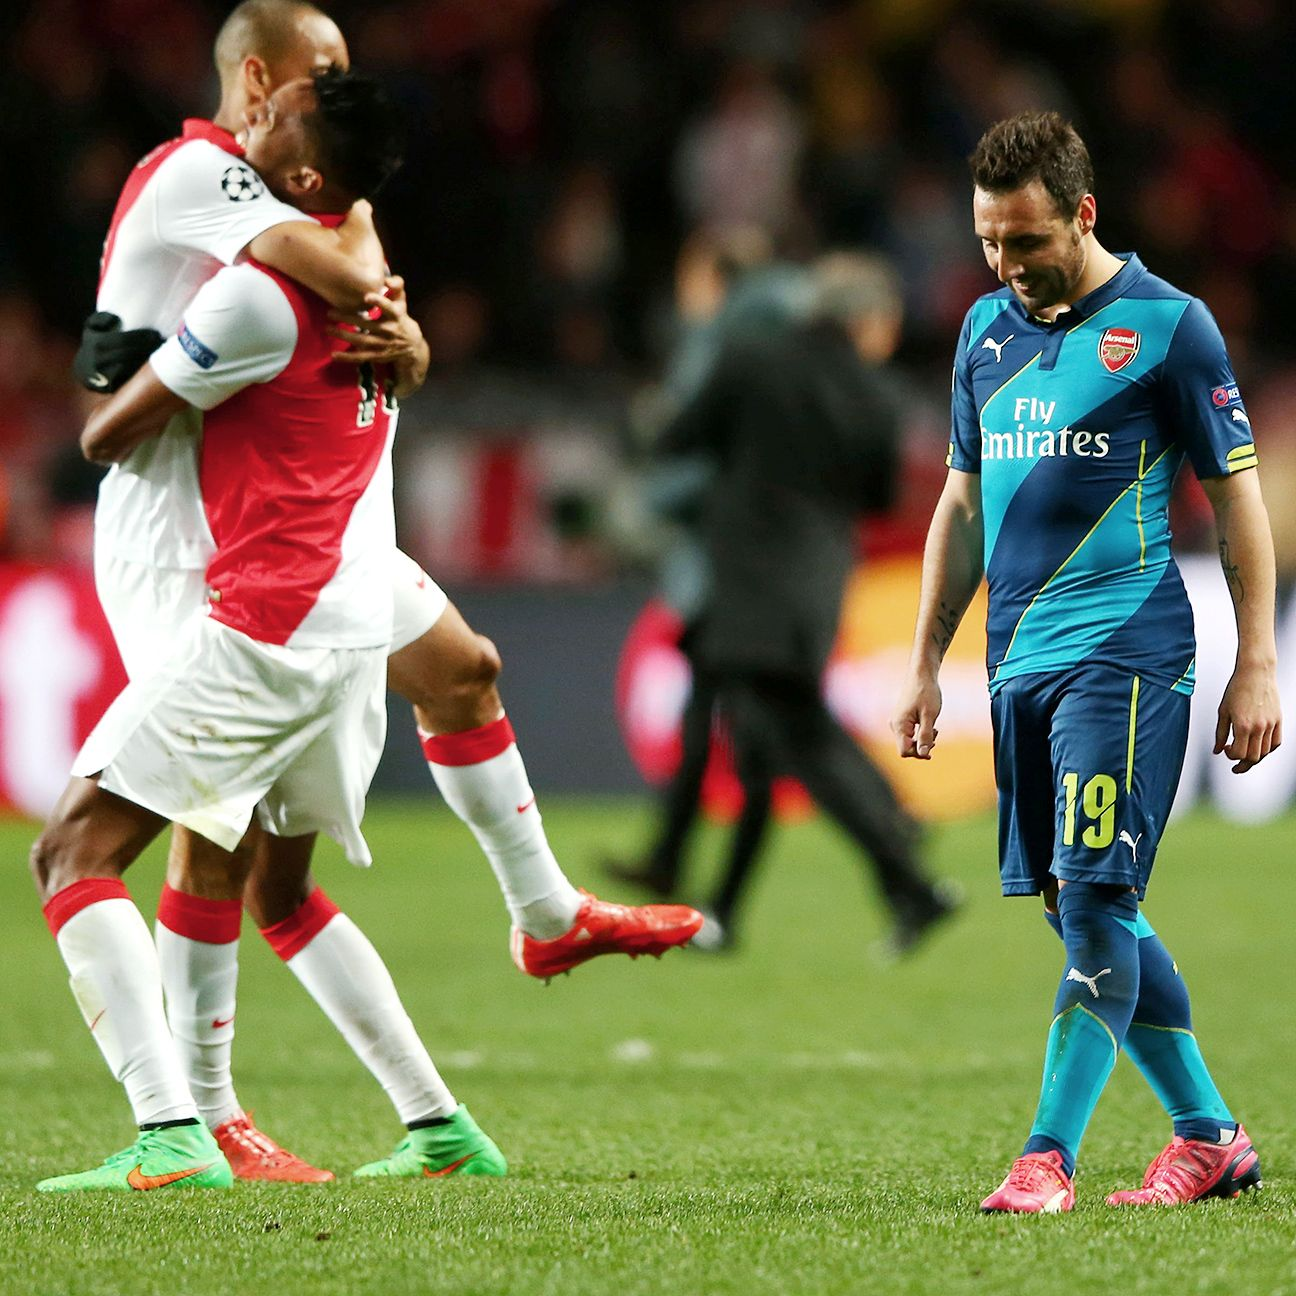 Arsenal's inability to advance to the Champions League quarterfinal round was one of the many failures Premier League clubs experienced in European competition in 2014-15.